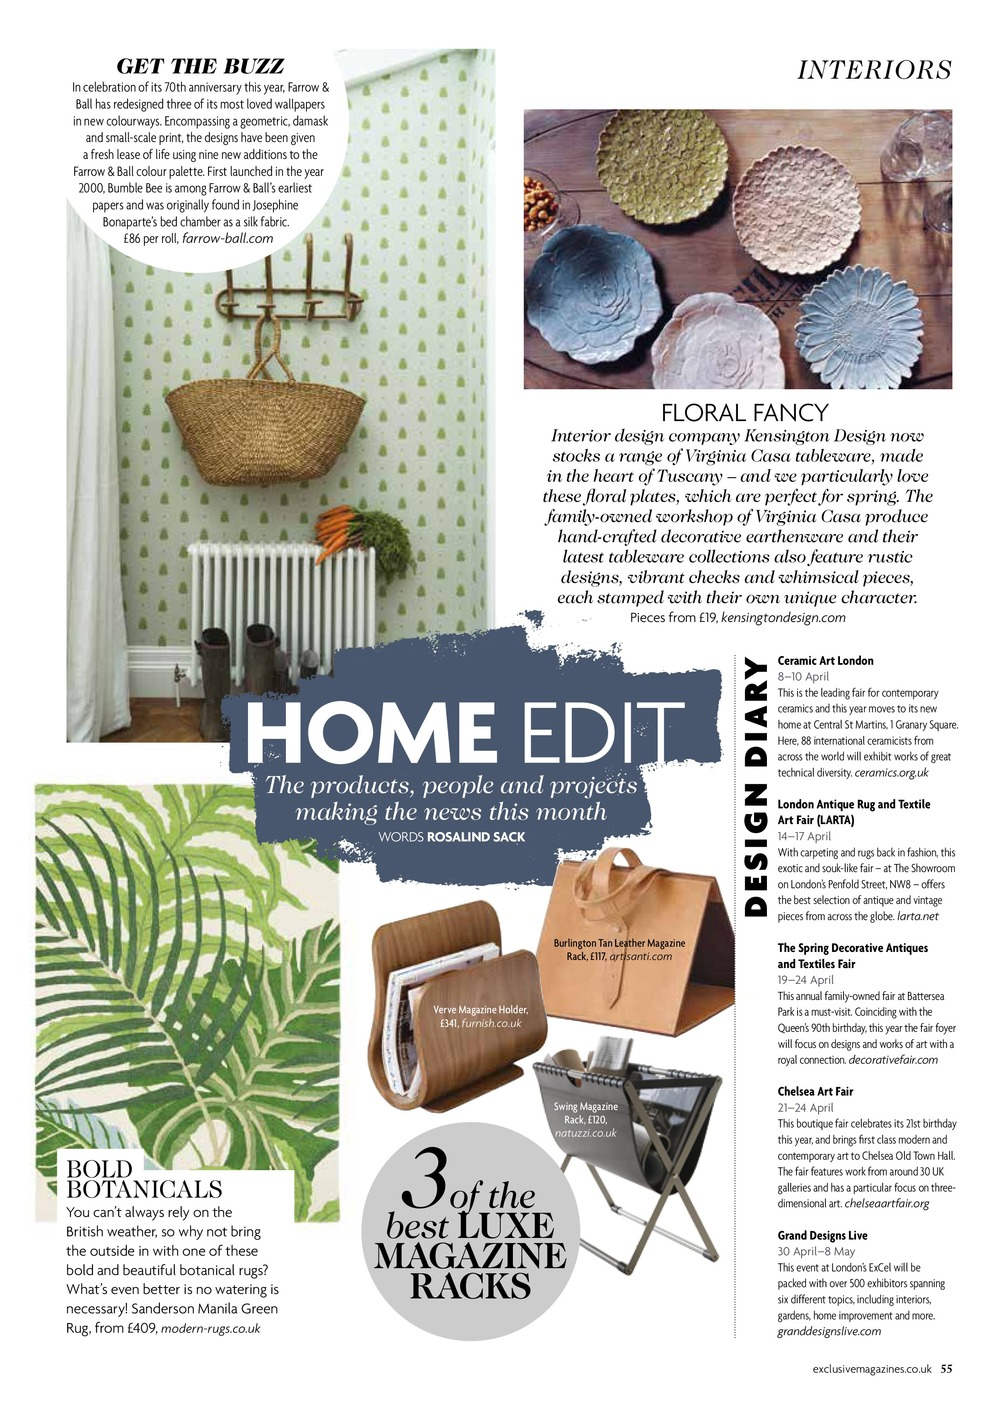 Home Edit, Exclusive Magazine